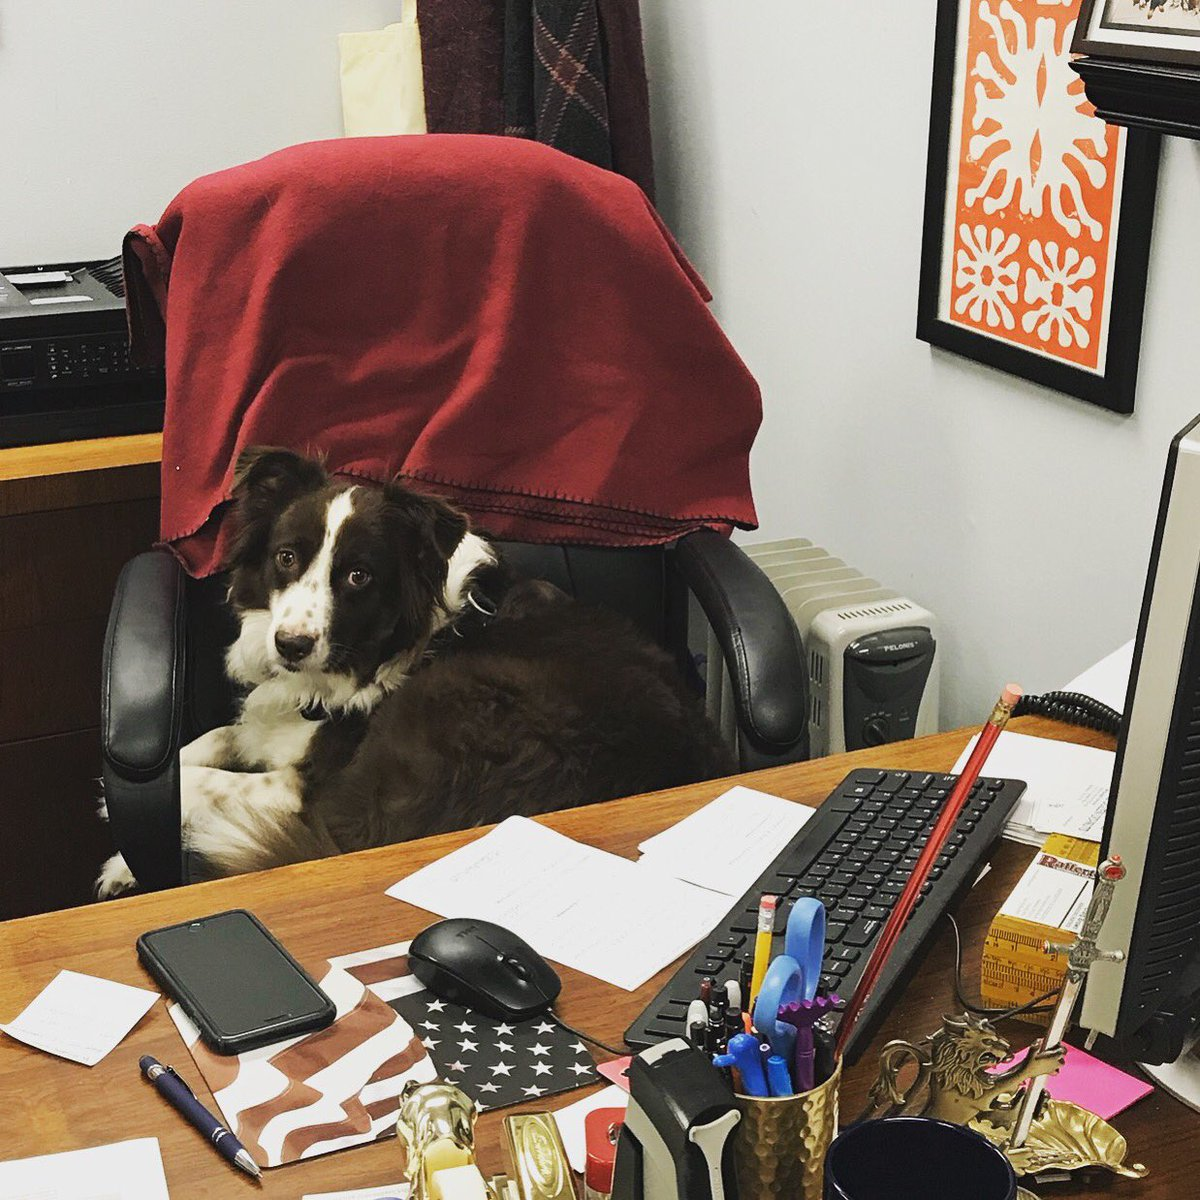 #TakeYourDogToWorkDay Latest News Trends Updates Images - MRACC7